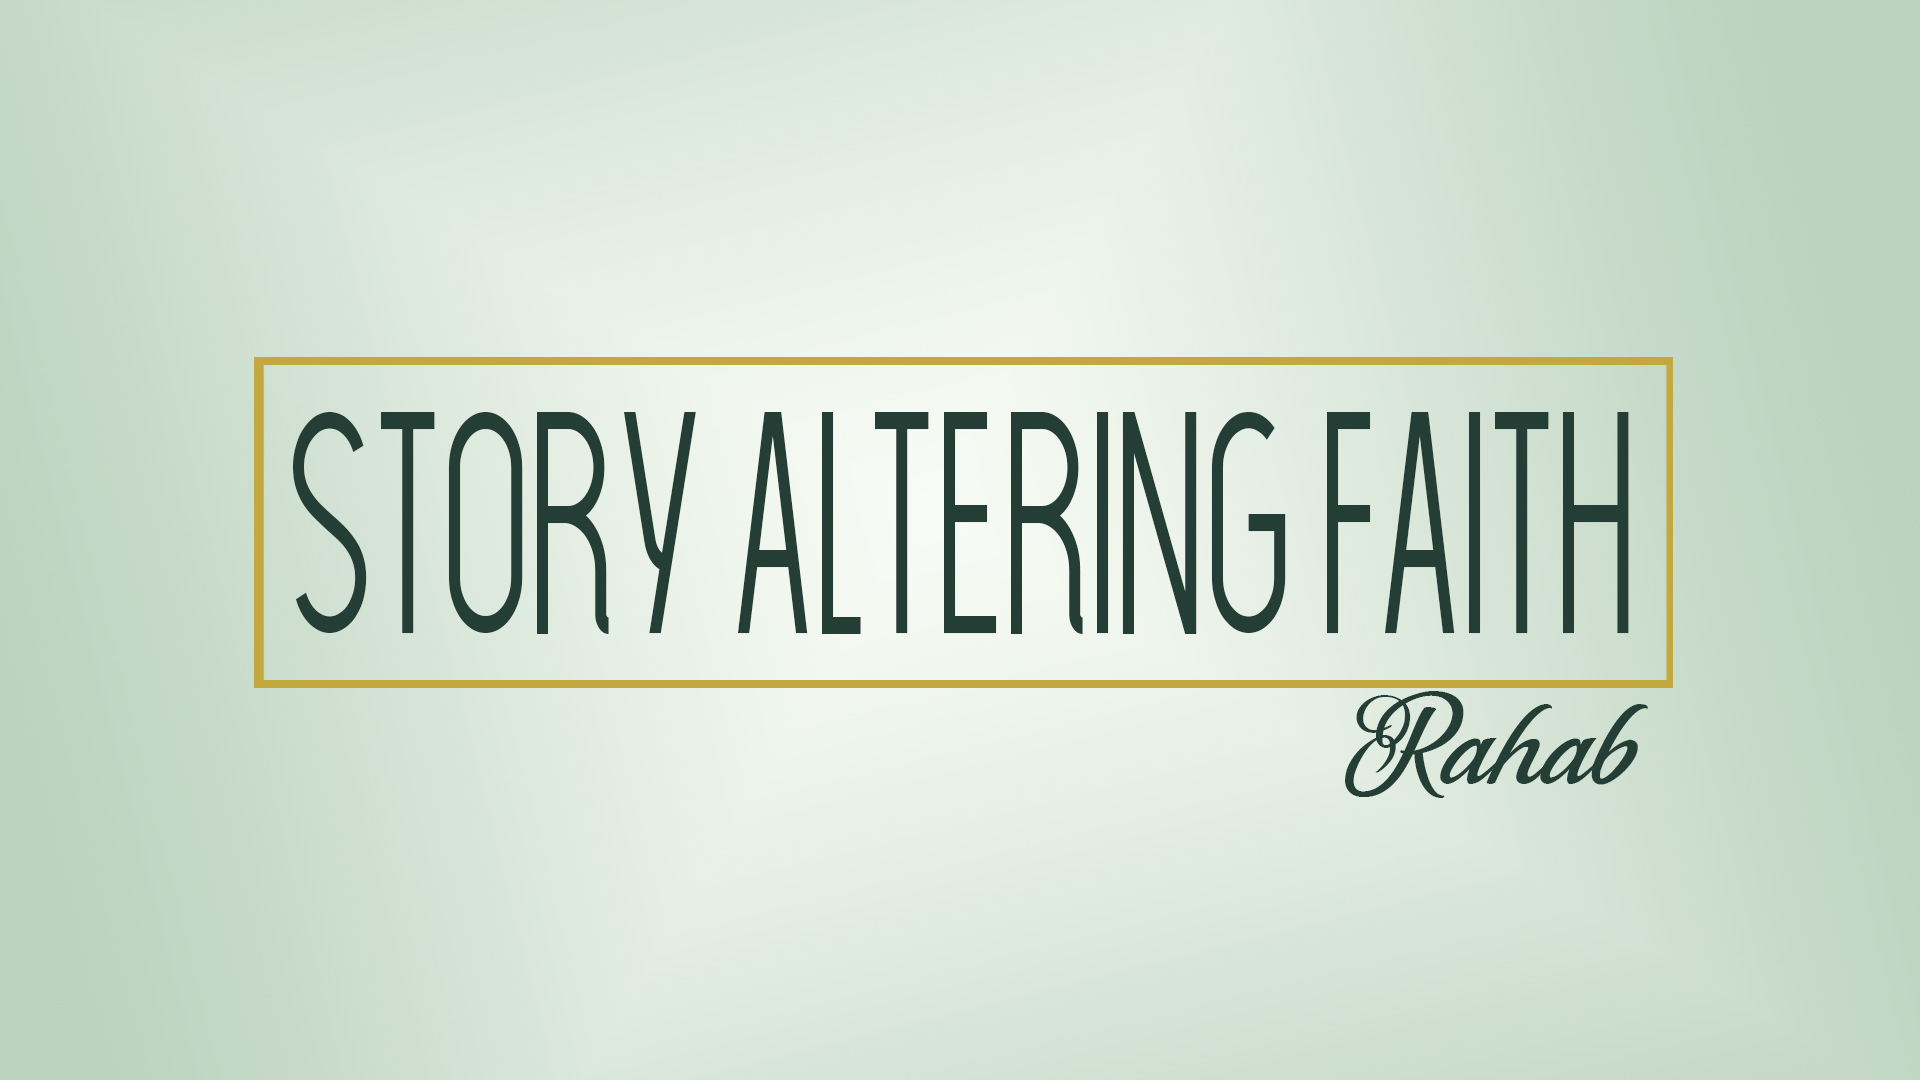 Story Altering Faith-Rahab